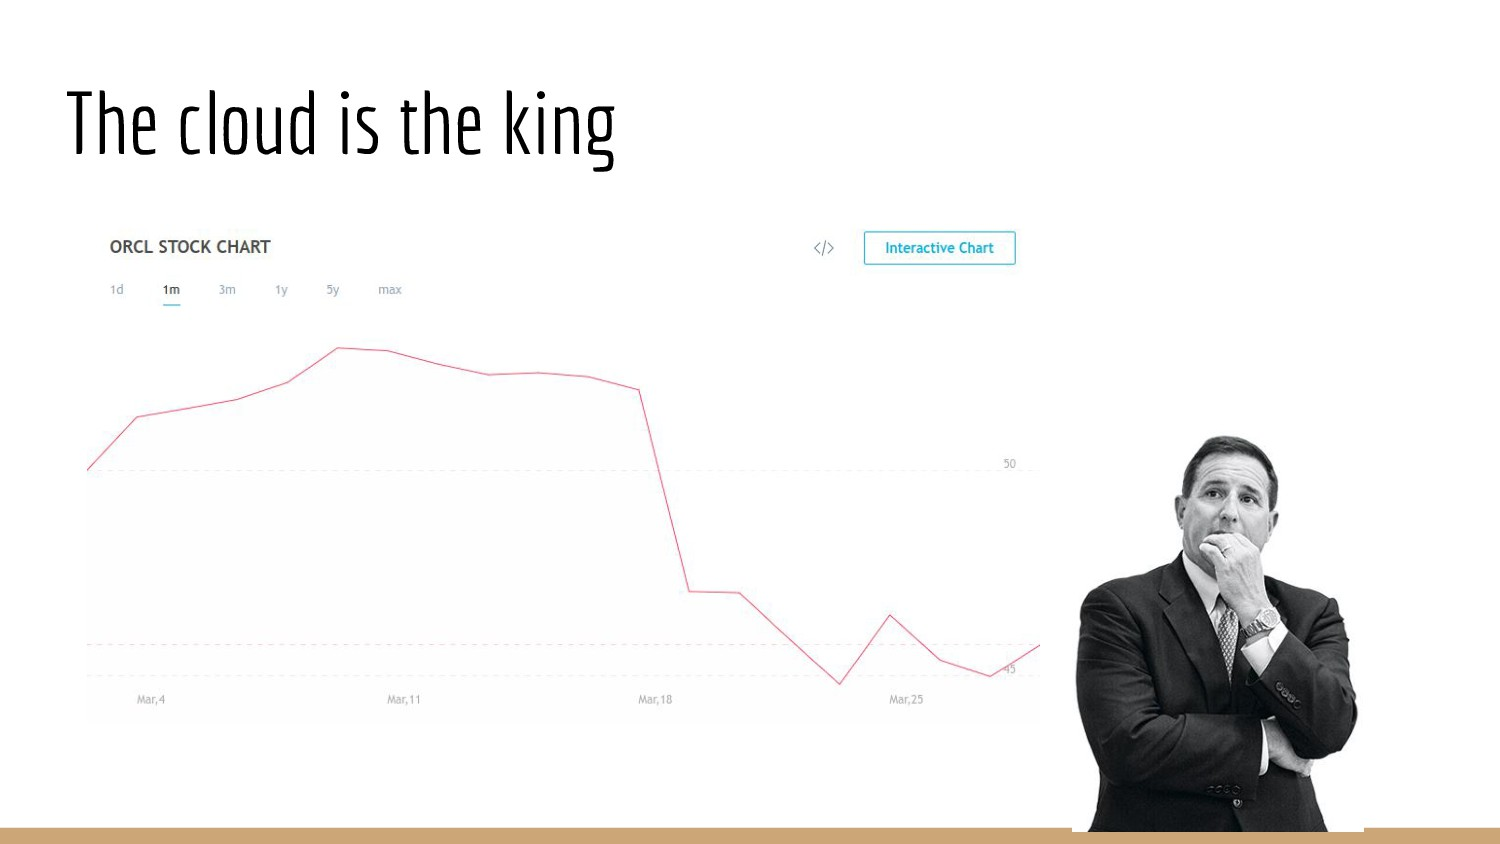 The cloud is the king